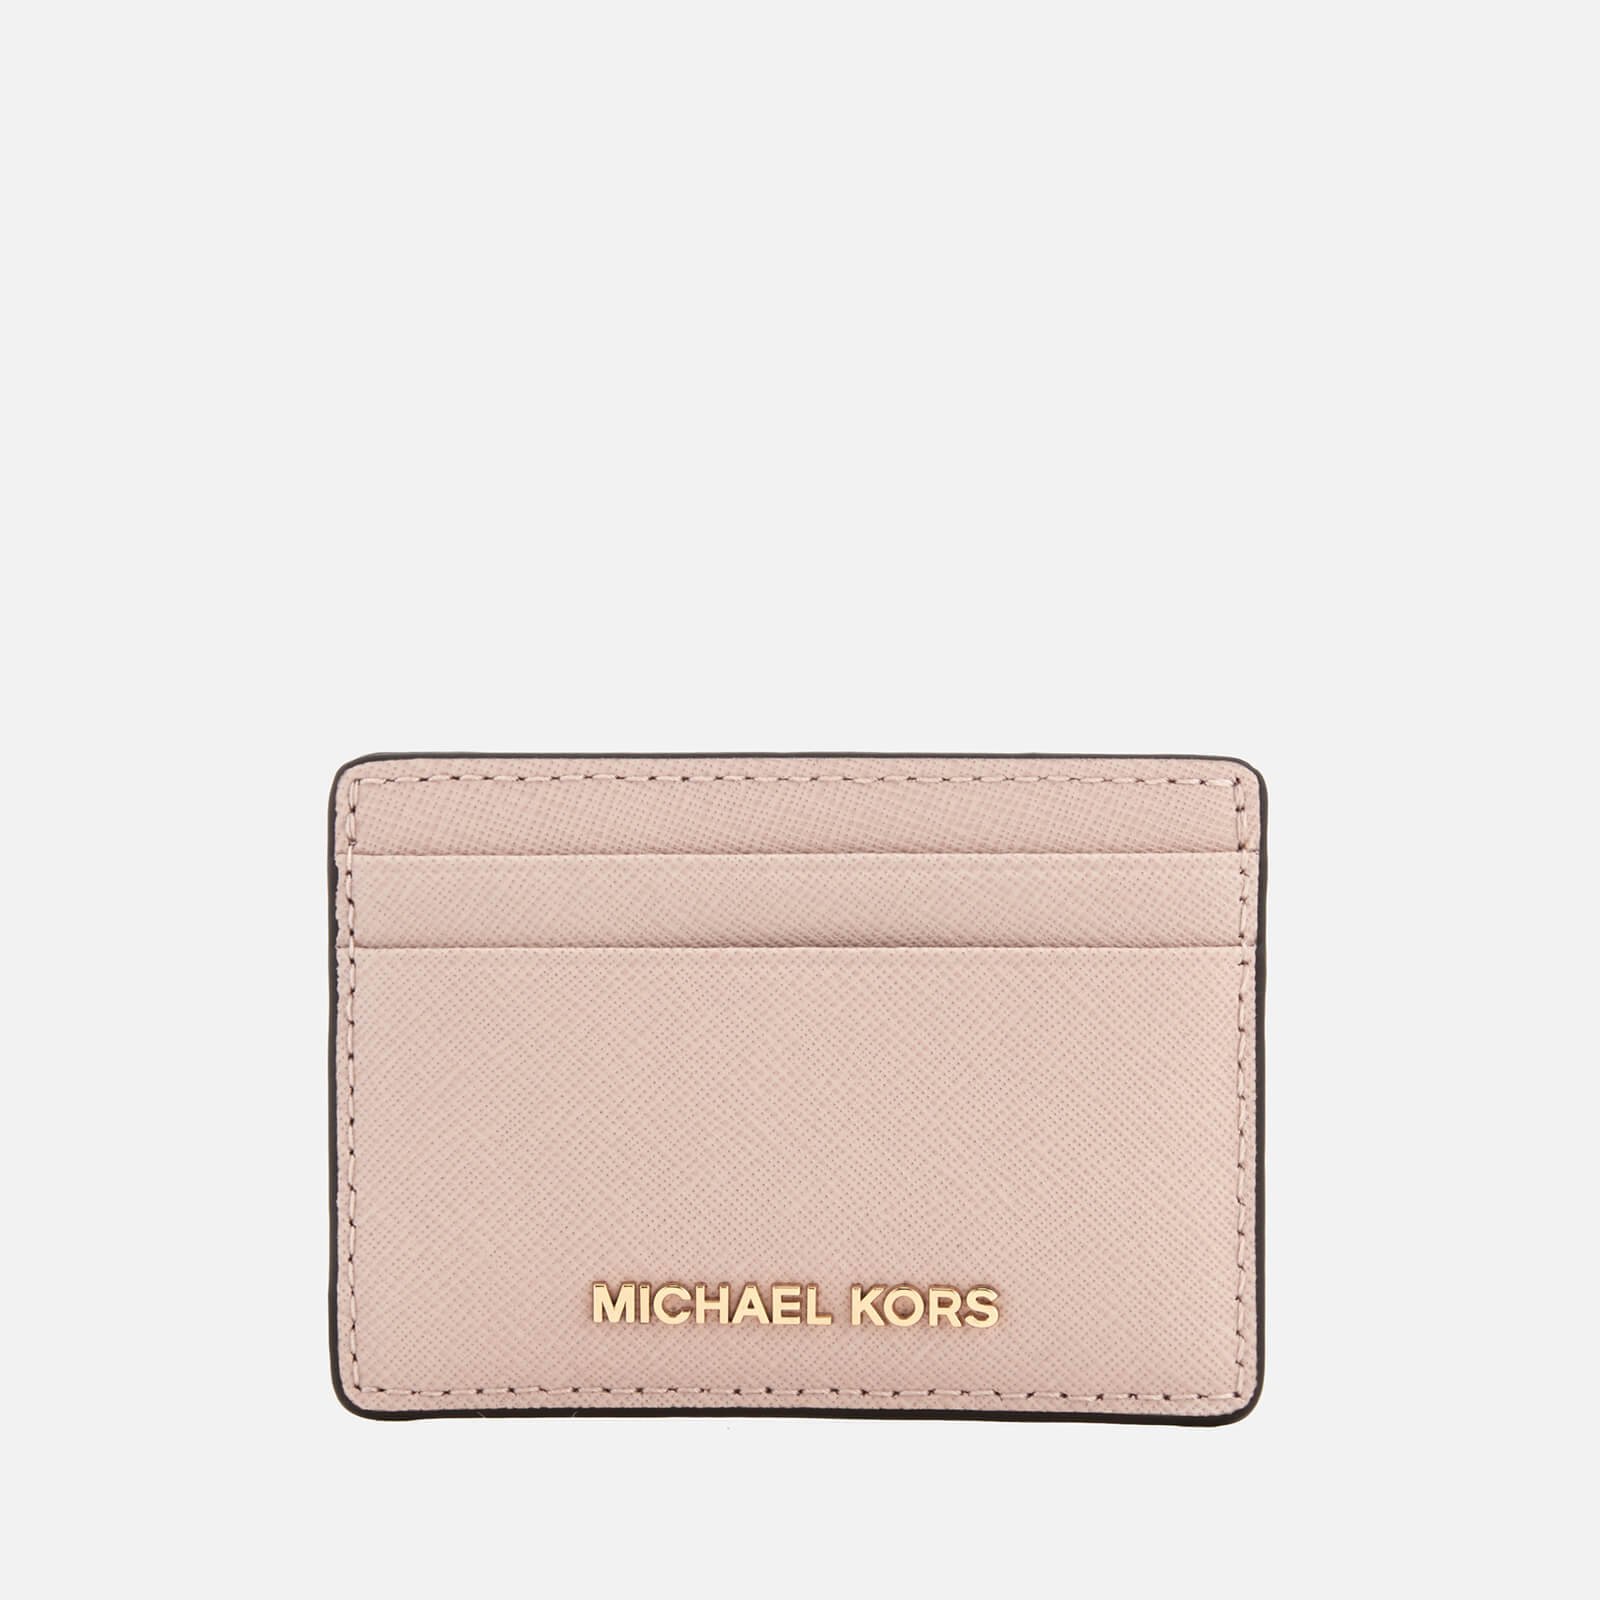 8fb031303514ca MICHAEL MICHAEL KORS Women's Money Pieces Card Holder - Soft Pink - Free UK  Delivery over £50